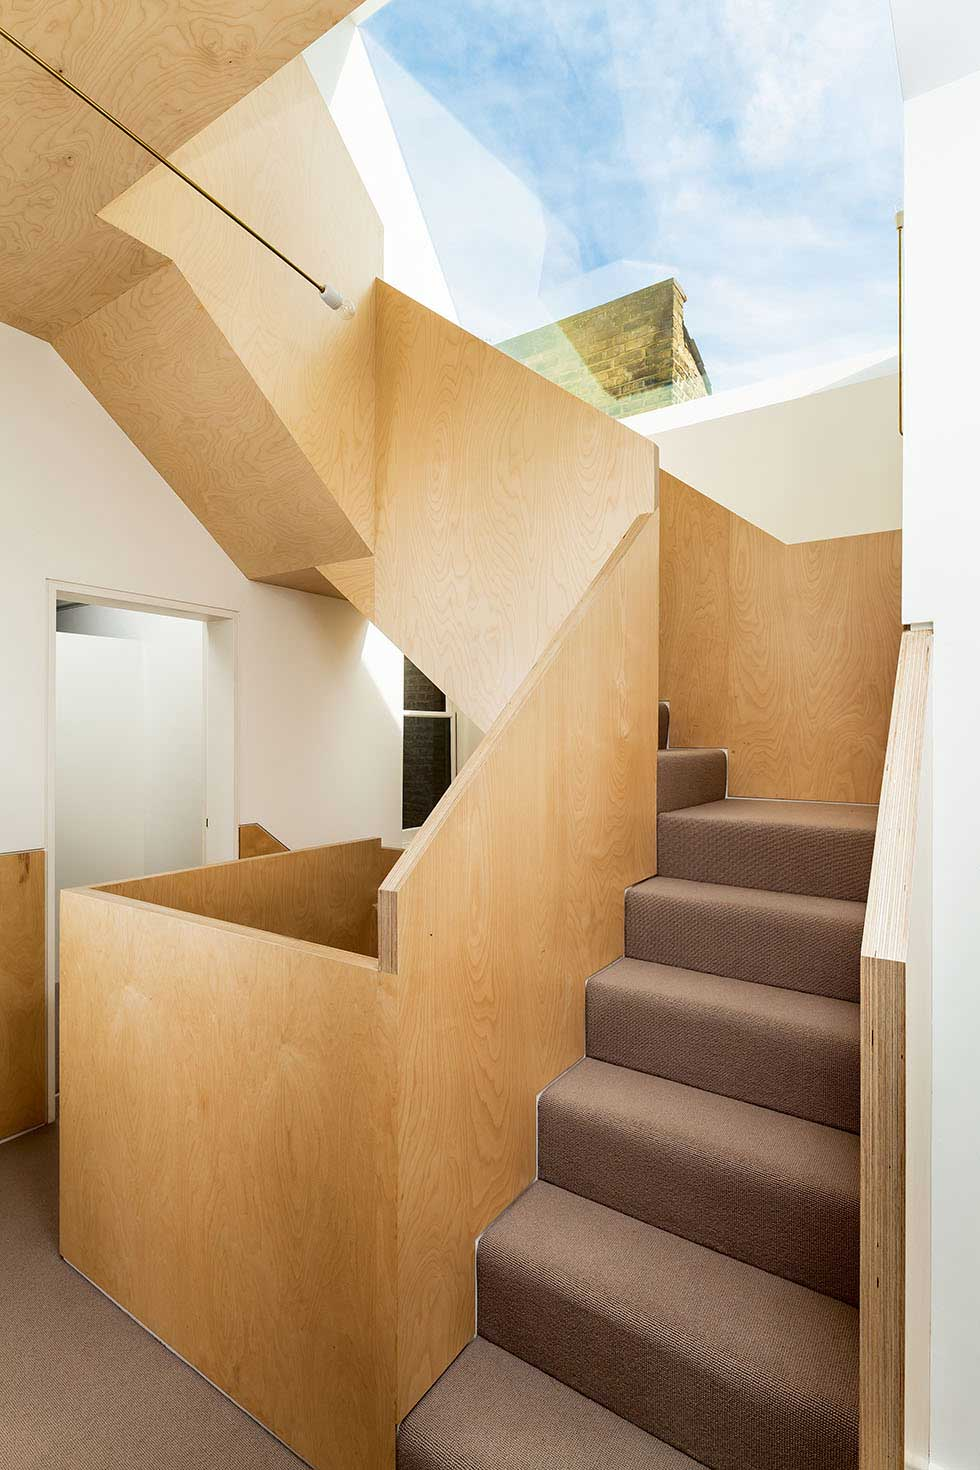 A Dramatic Triple Height Plywood Staircase Creates A Stark Contrast To The  Victorian Exterior Of This Home. The Stairwell Is Crowned By A Large  Skylight ...